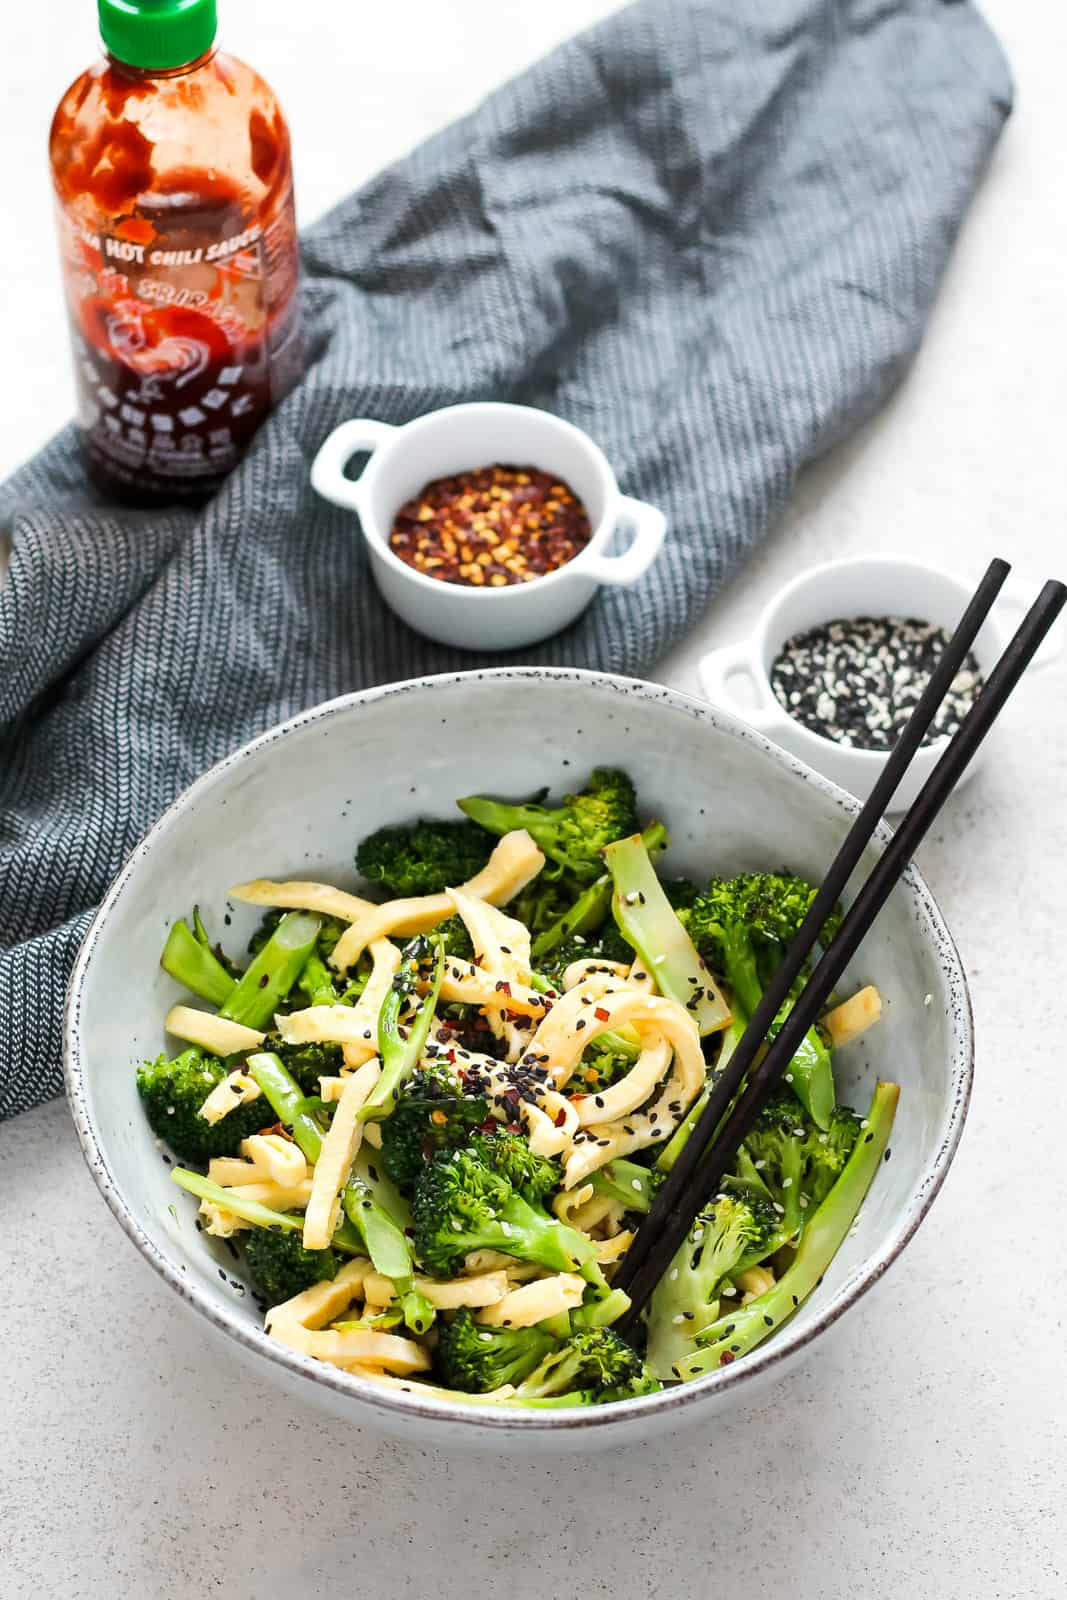 pan-fried broccoli and egg in a blue bowl